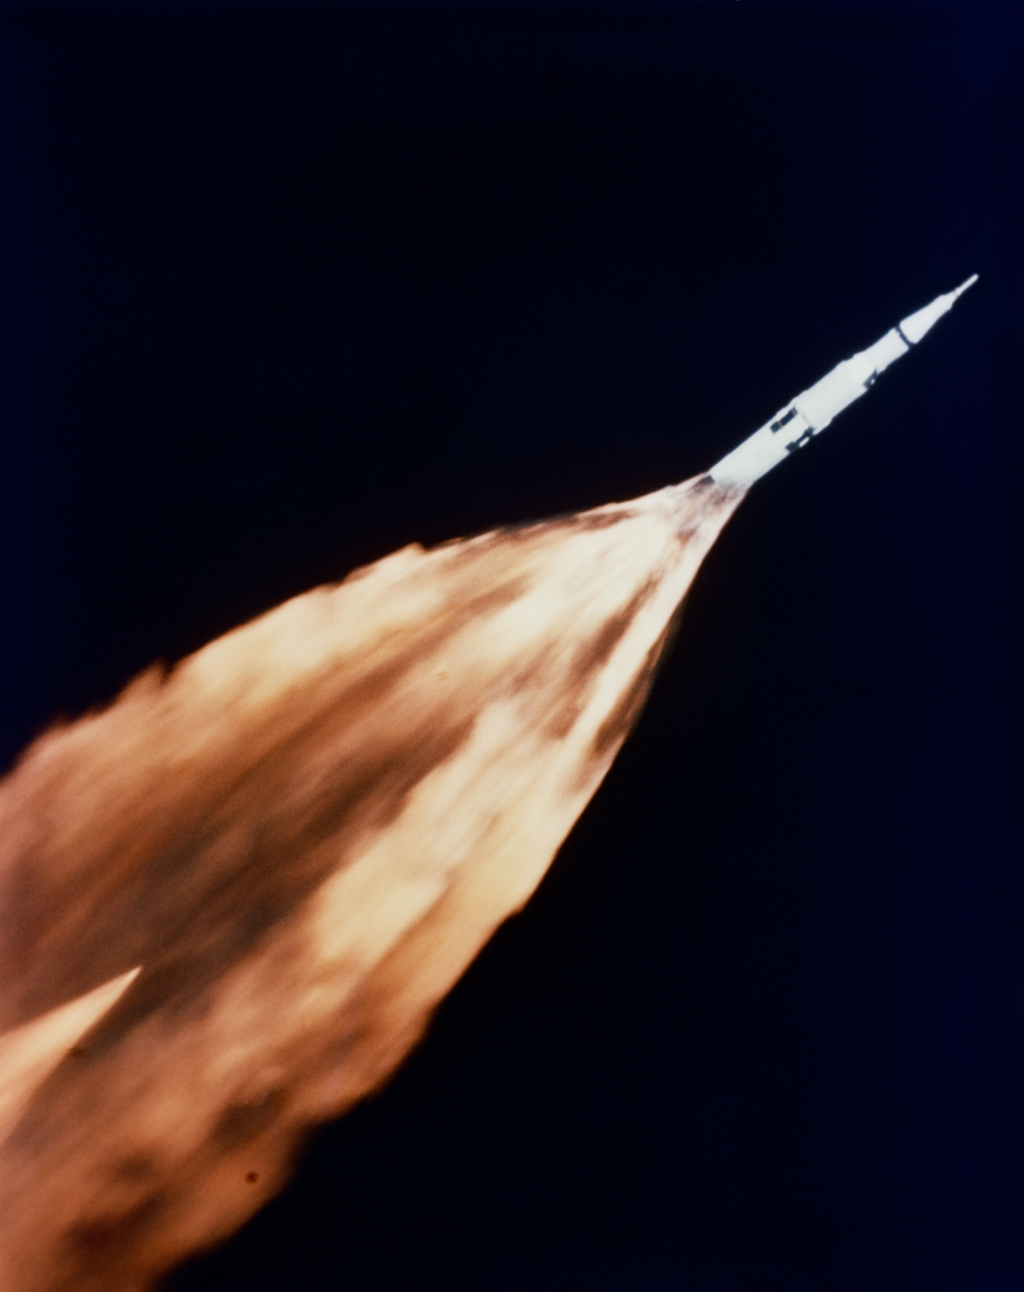 32. NASA Apollo Mission VI (Spacecraft 020/Saturn 502): Five First Stage (S-IC) F-1 Engines, Generating An Enormous Flame of Fire, Power the Saturn V Rocket Propelling the Unmanned Apollo 6 Spacecraft 020 Into Space Seconds After Liftoff, April 4, 1968, NASA John F. Kennedy Space Center, State of Florida, USA. Photo Credit: NASA Apollo VI Mission: Unmanned Apollo 6 (Spacecraft 020/Saturn 502); Apollo Imagery (http://spaceflight.nasa.gov/gallery/images/apollo/apollo6/ndxpage1.html): S68-27366 (http://spaceflight.nasa.gov/gallery/images/apollo/apollo6/html/s68-27366.html), NASA Human Space Flight (http://spaceflight.nasa.gov), National Aeronautics and Space Administration (NASA, http://www.nasa.gov), Government of the United States of America.